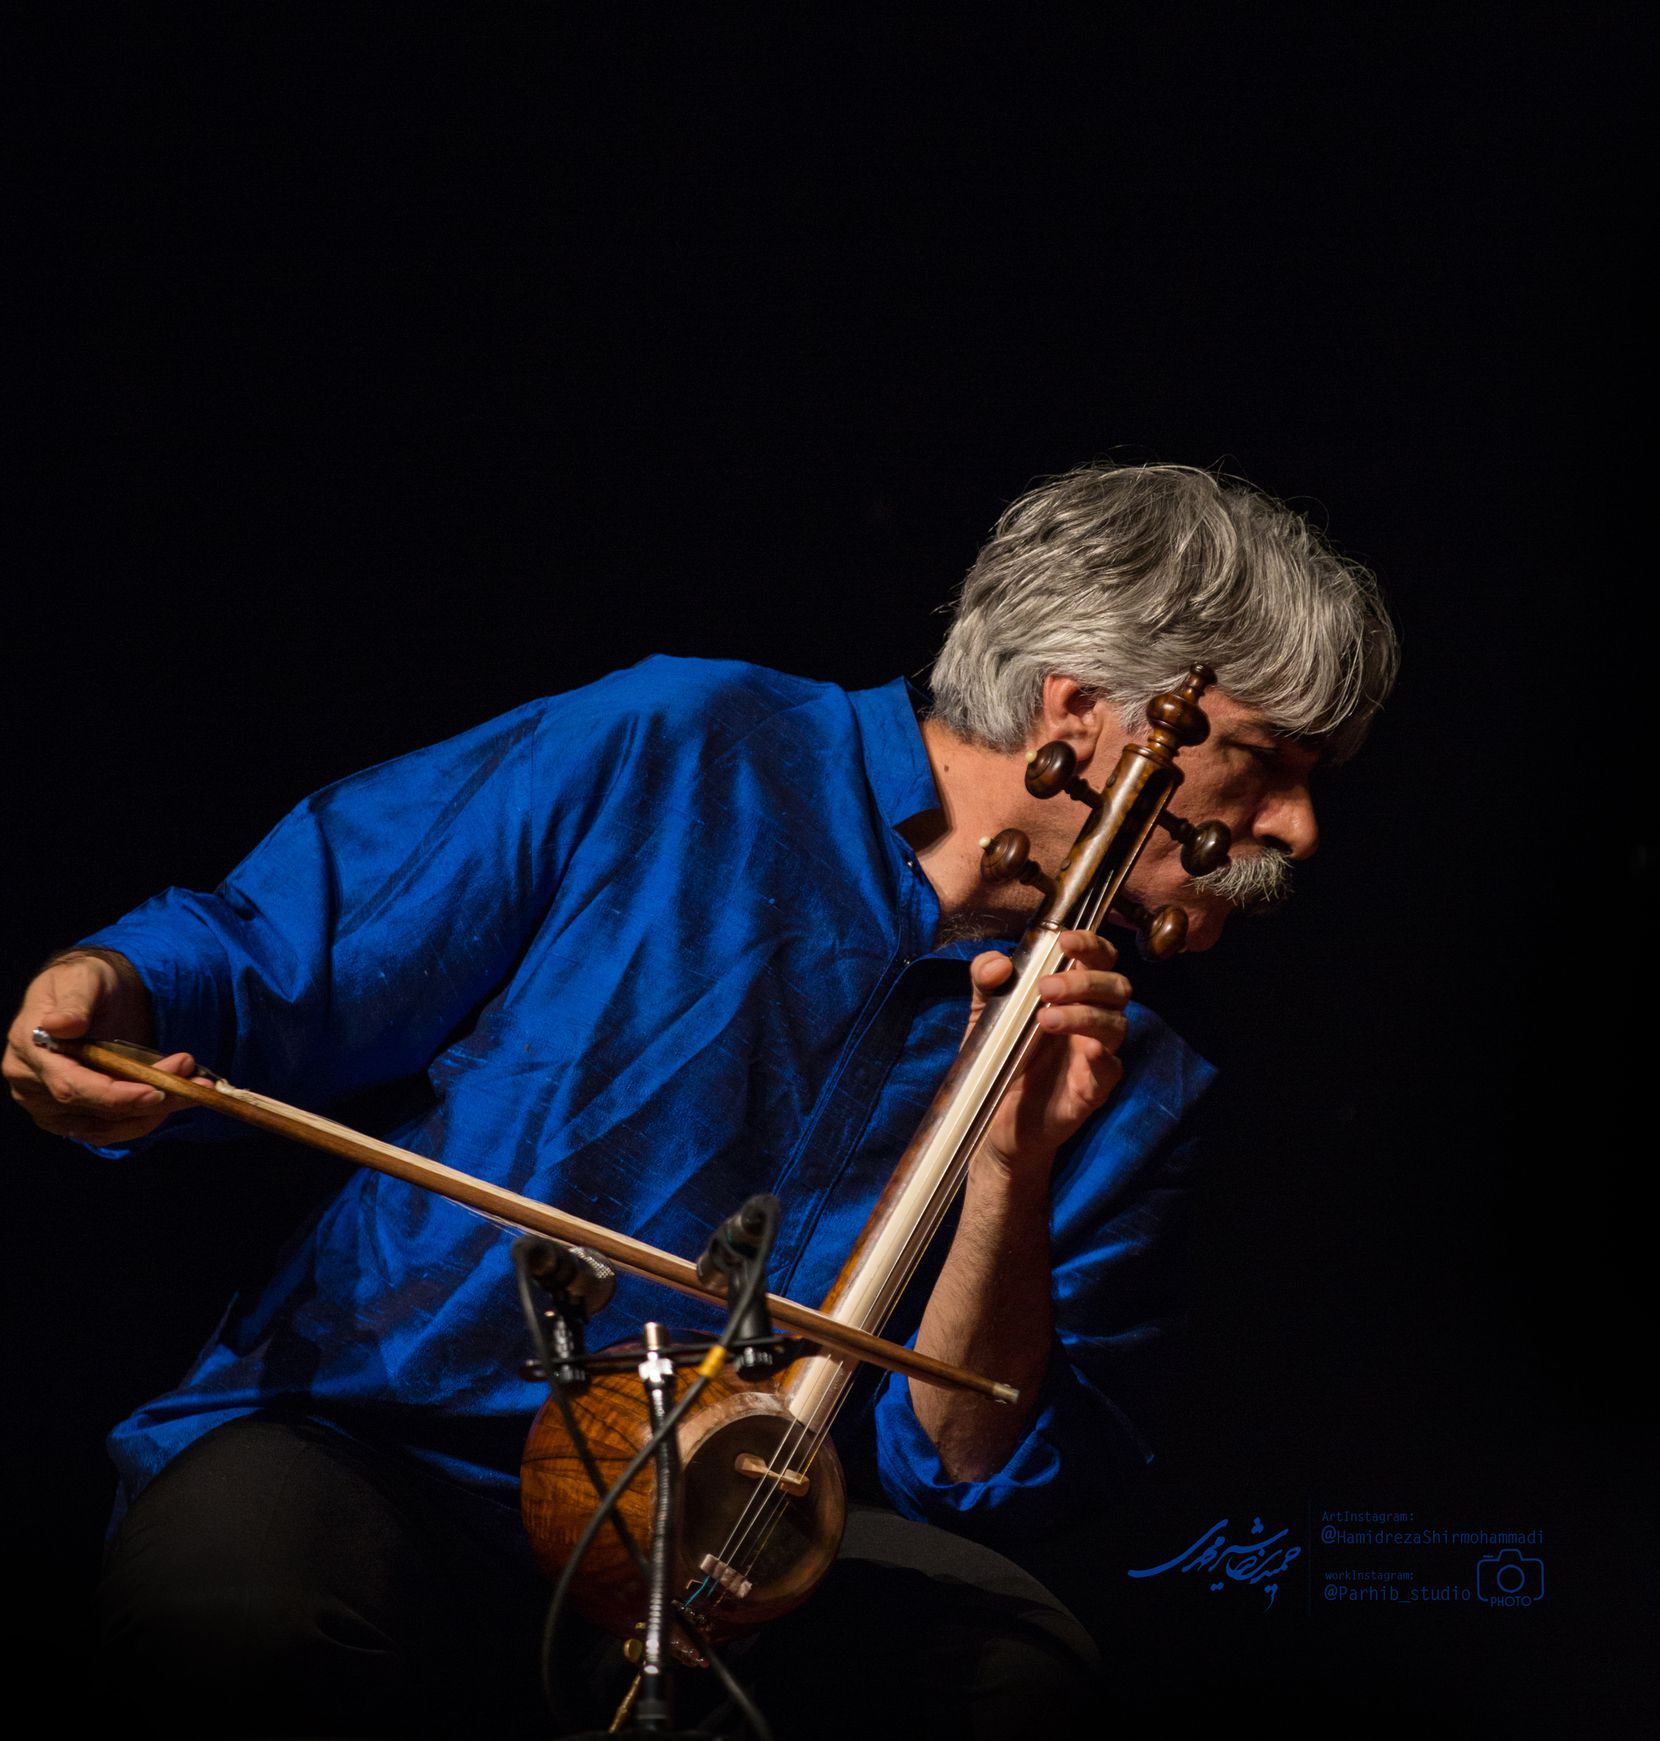 Iranian musician Kayhan Kalhor plays a classical Persian instrument to sold-out concerts.